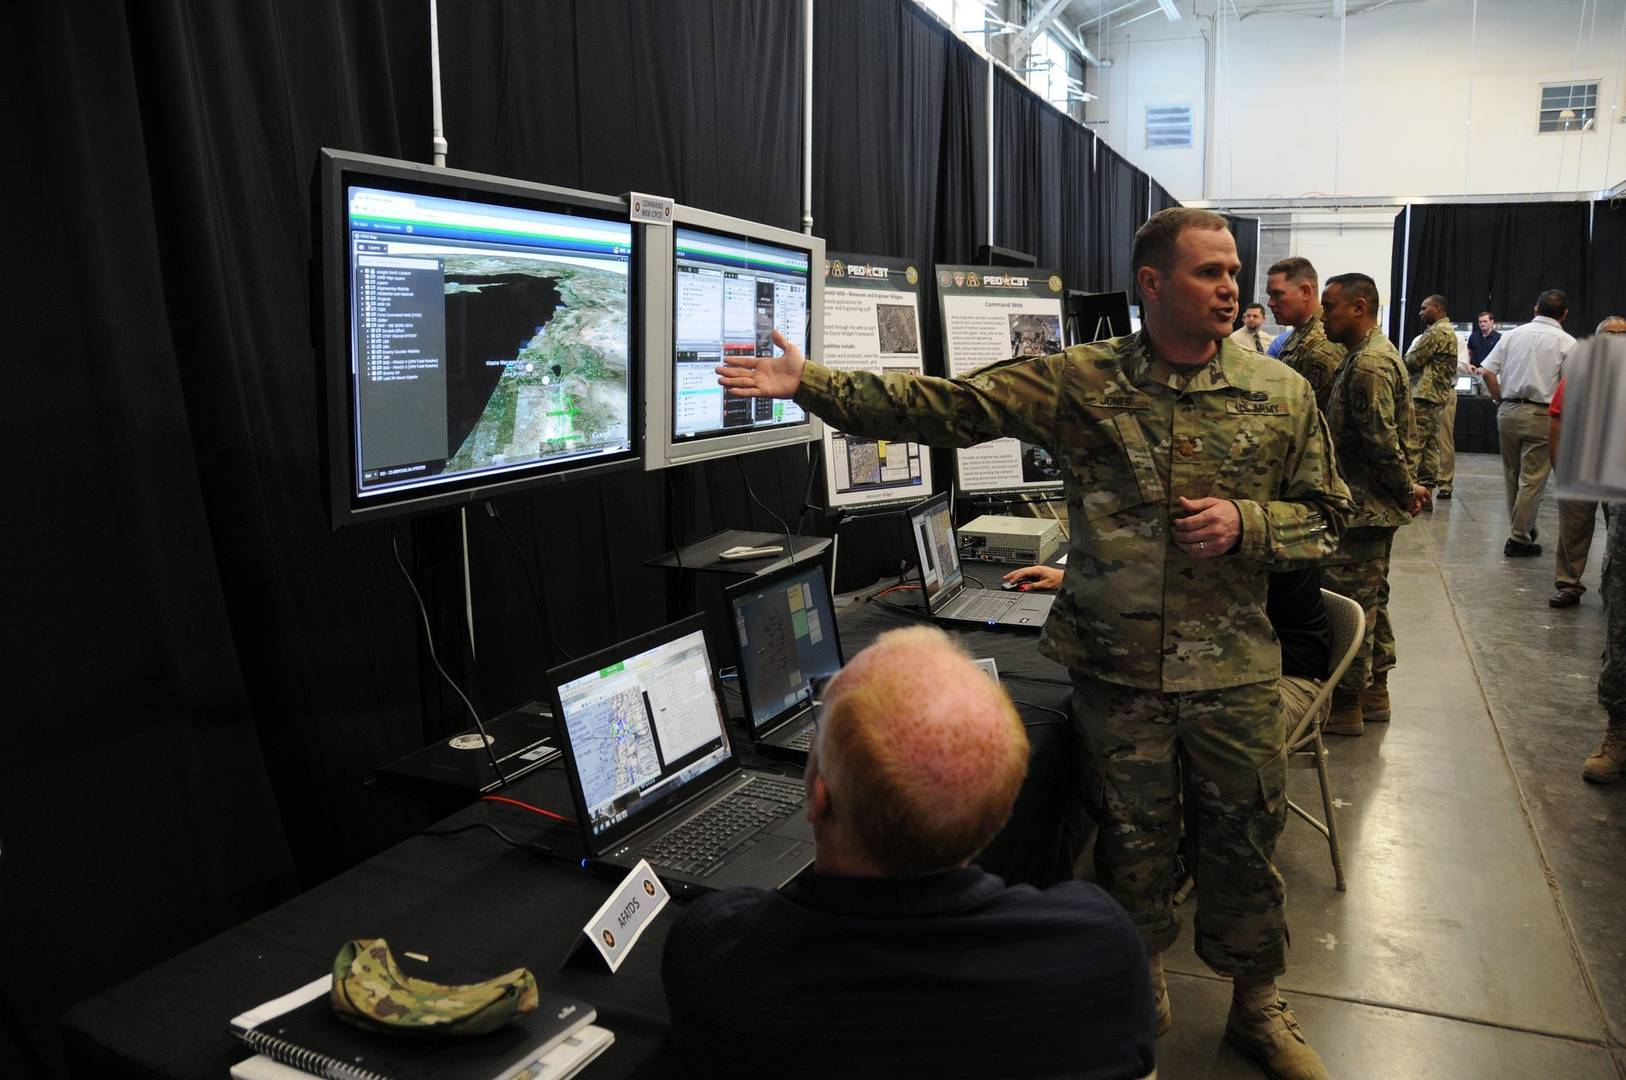 The Soldier's Network - Army Enhances Network Operations, the Eyes and Ears of the Network